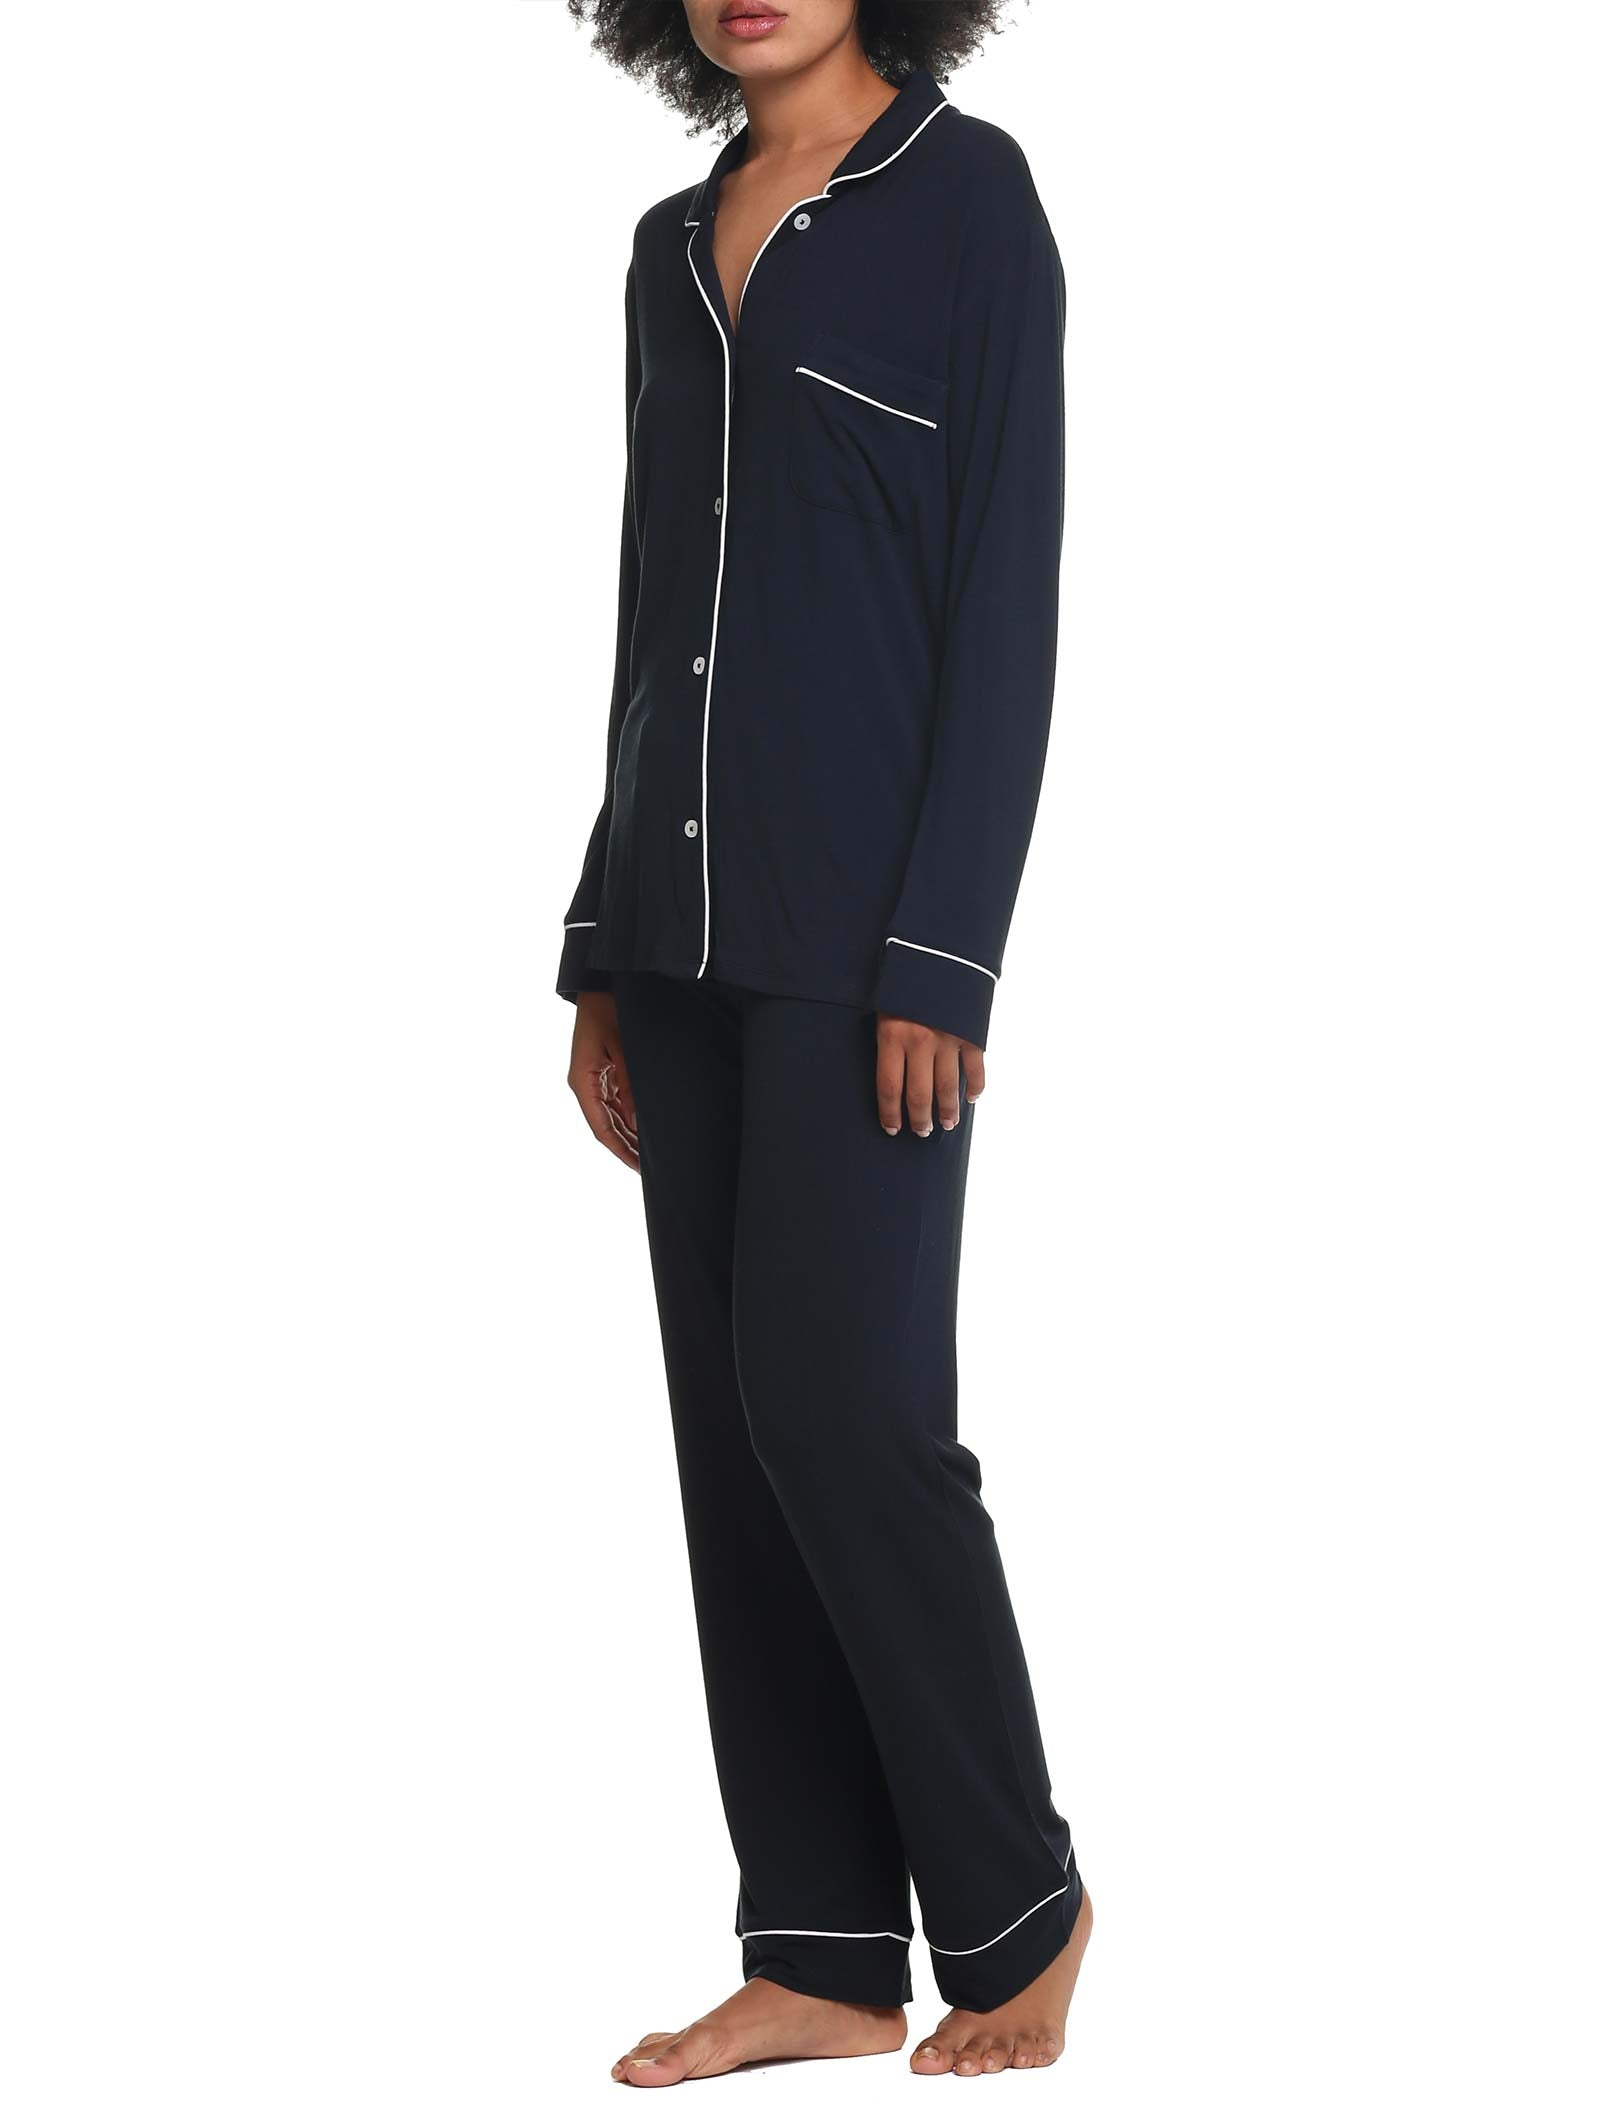 Modal Soft Kate Full Length PJ in Black